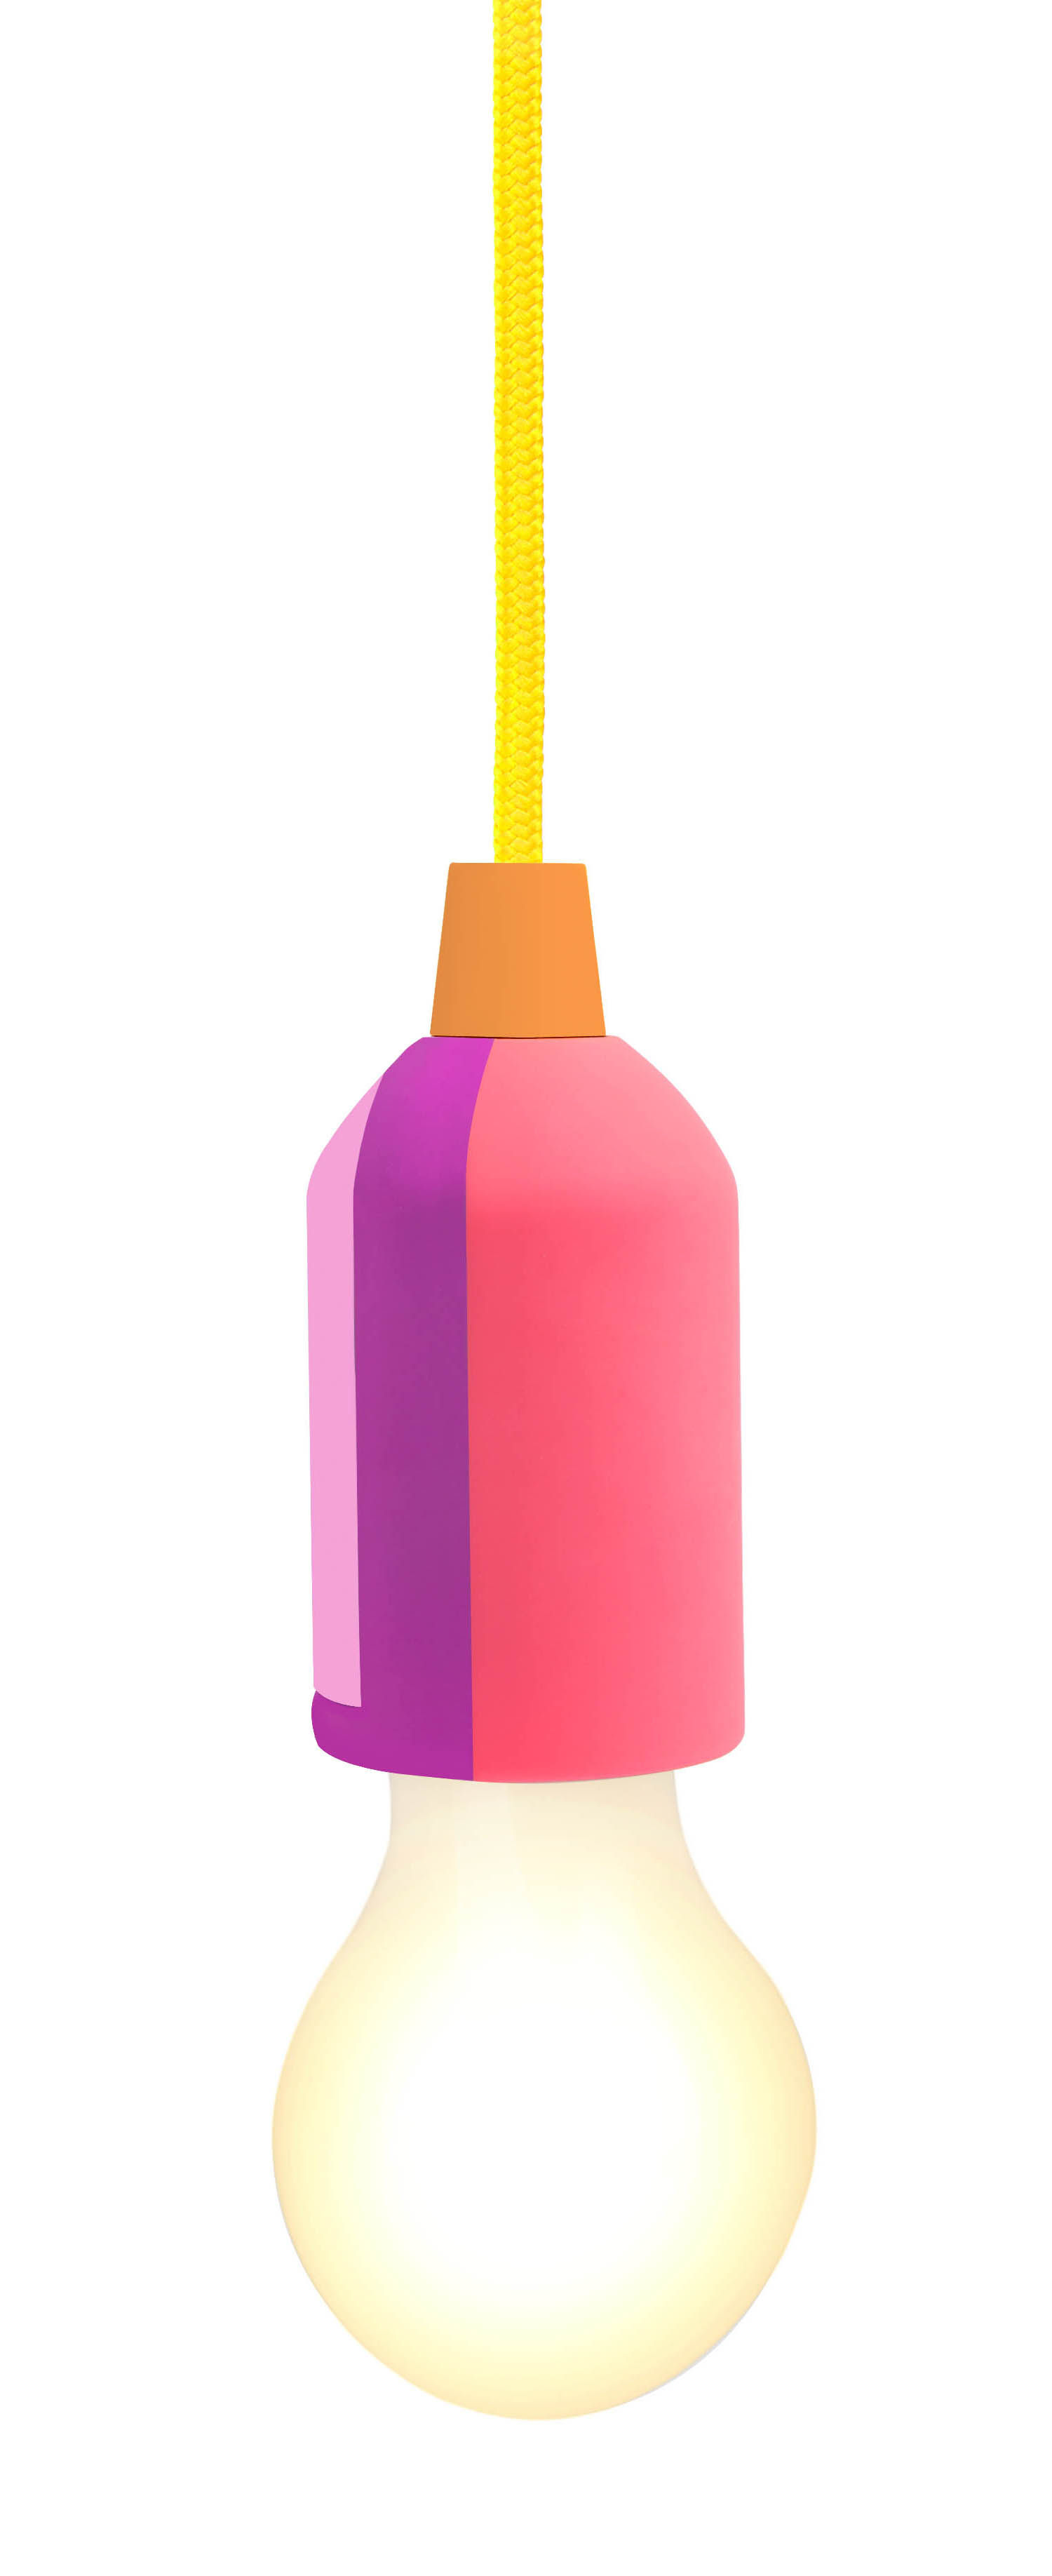 Decoration - Children's Home Accessories - Pull Cord Wireless lamp - / LED - Fabric cable to suspend it by Sunnylife - Rainbow / Pink & purple -  Plastique opalin, ABS, Fabric